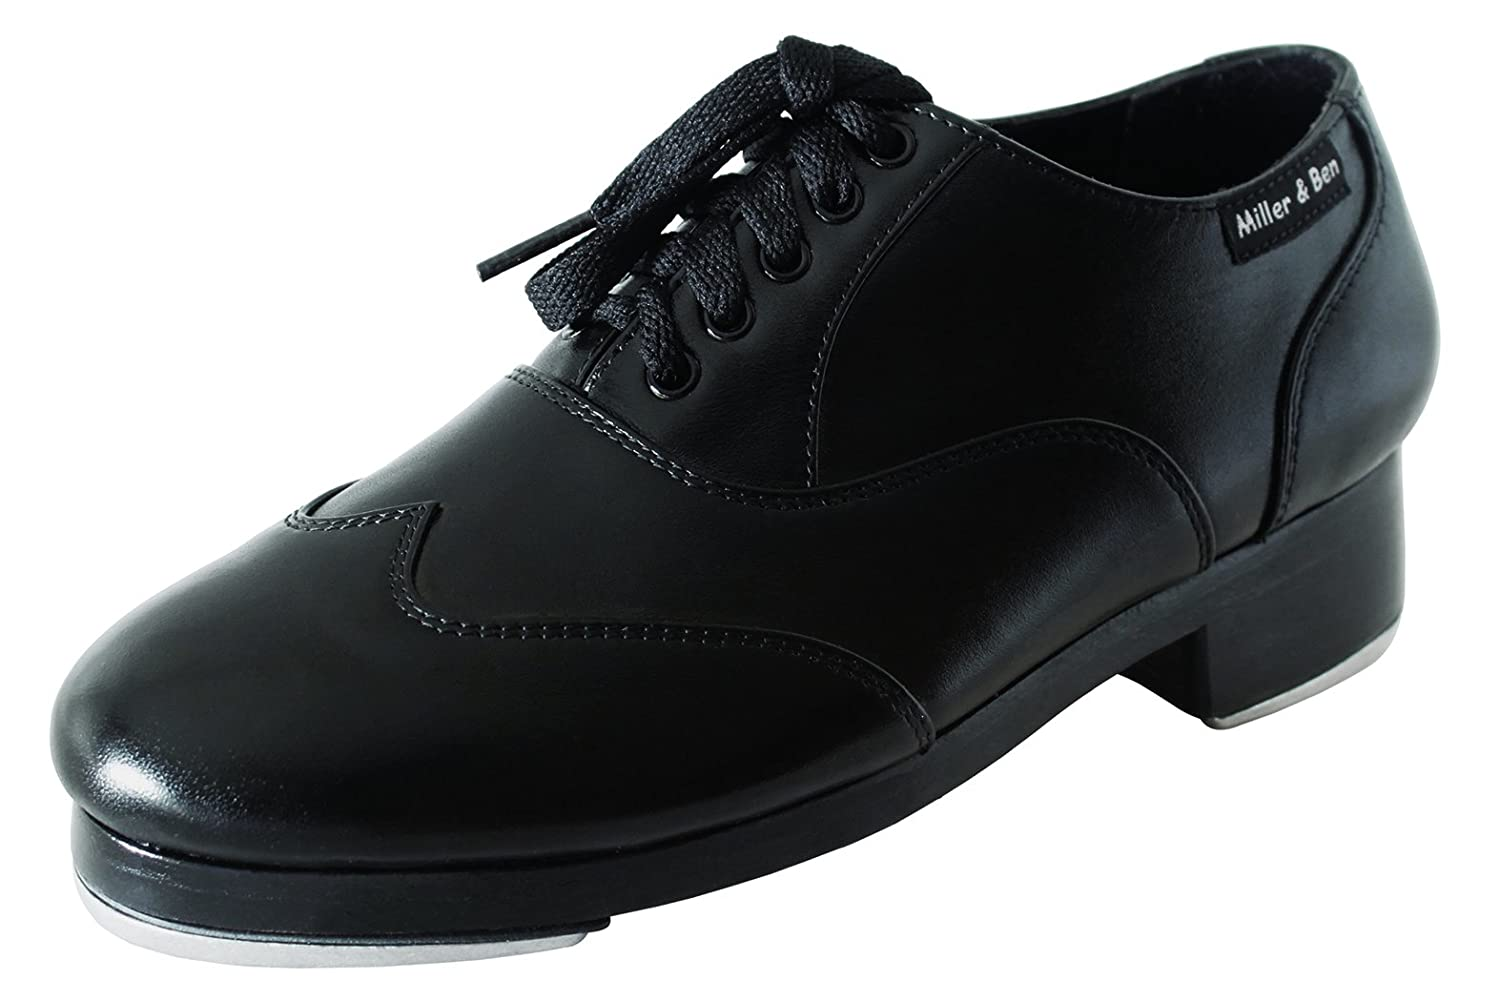 Miller & Ben Tap Shoes; Jazz-Tap Master; All Black - Standard Sizes B016UW082G 50 - Regular